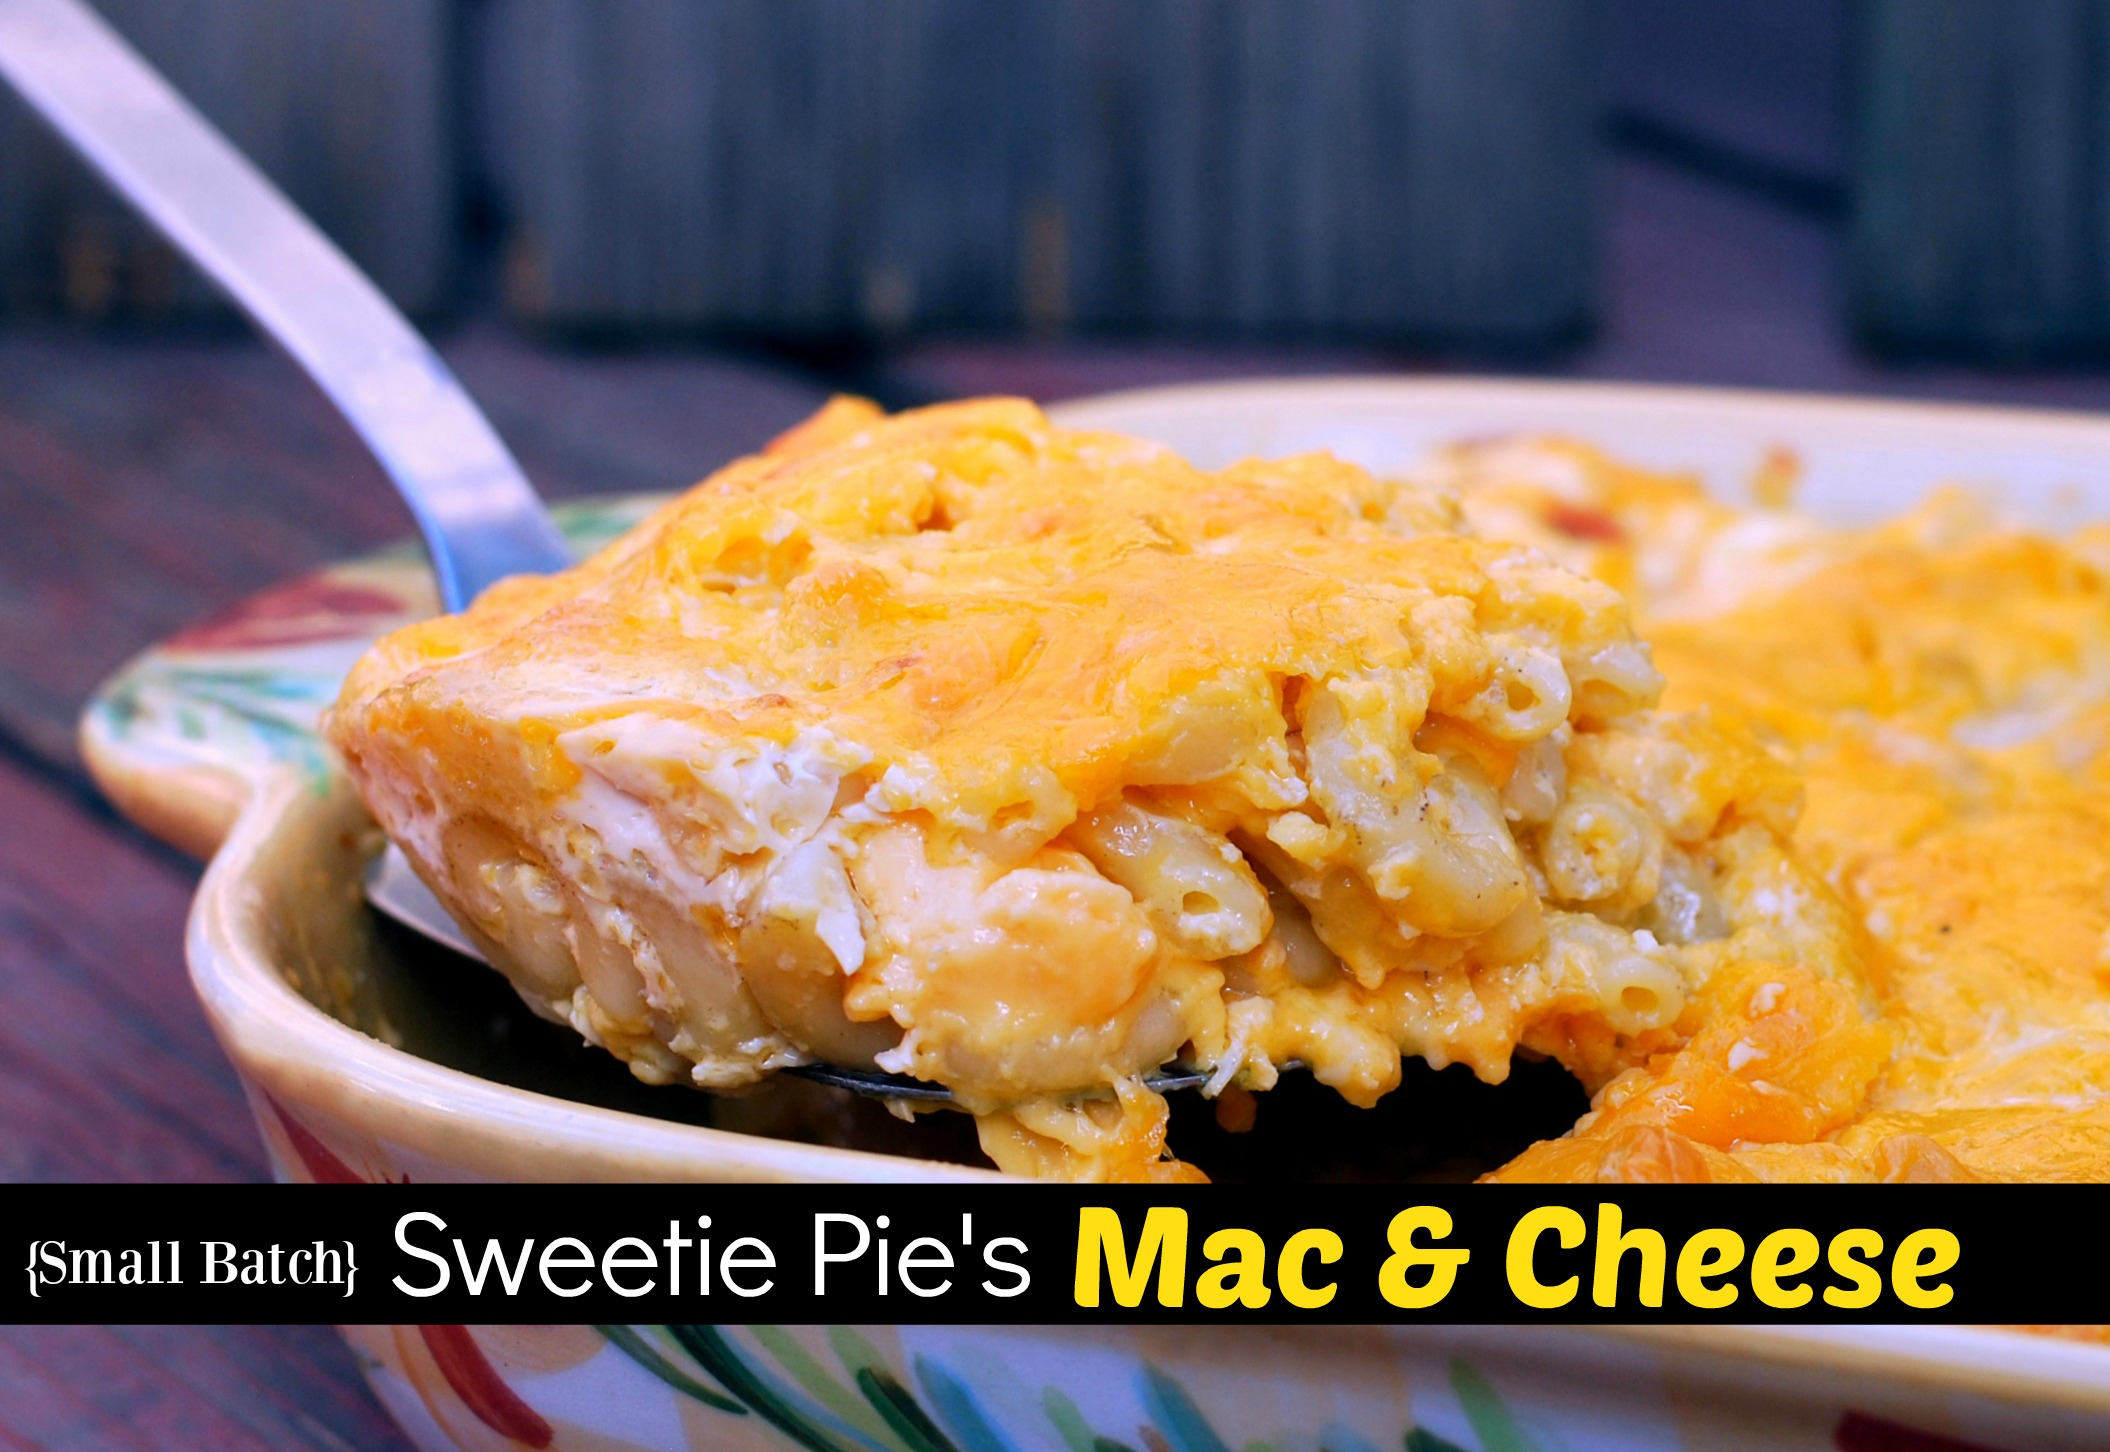 [Small Batch] Sweetie Pie's Mac & Cheese